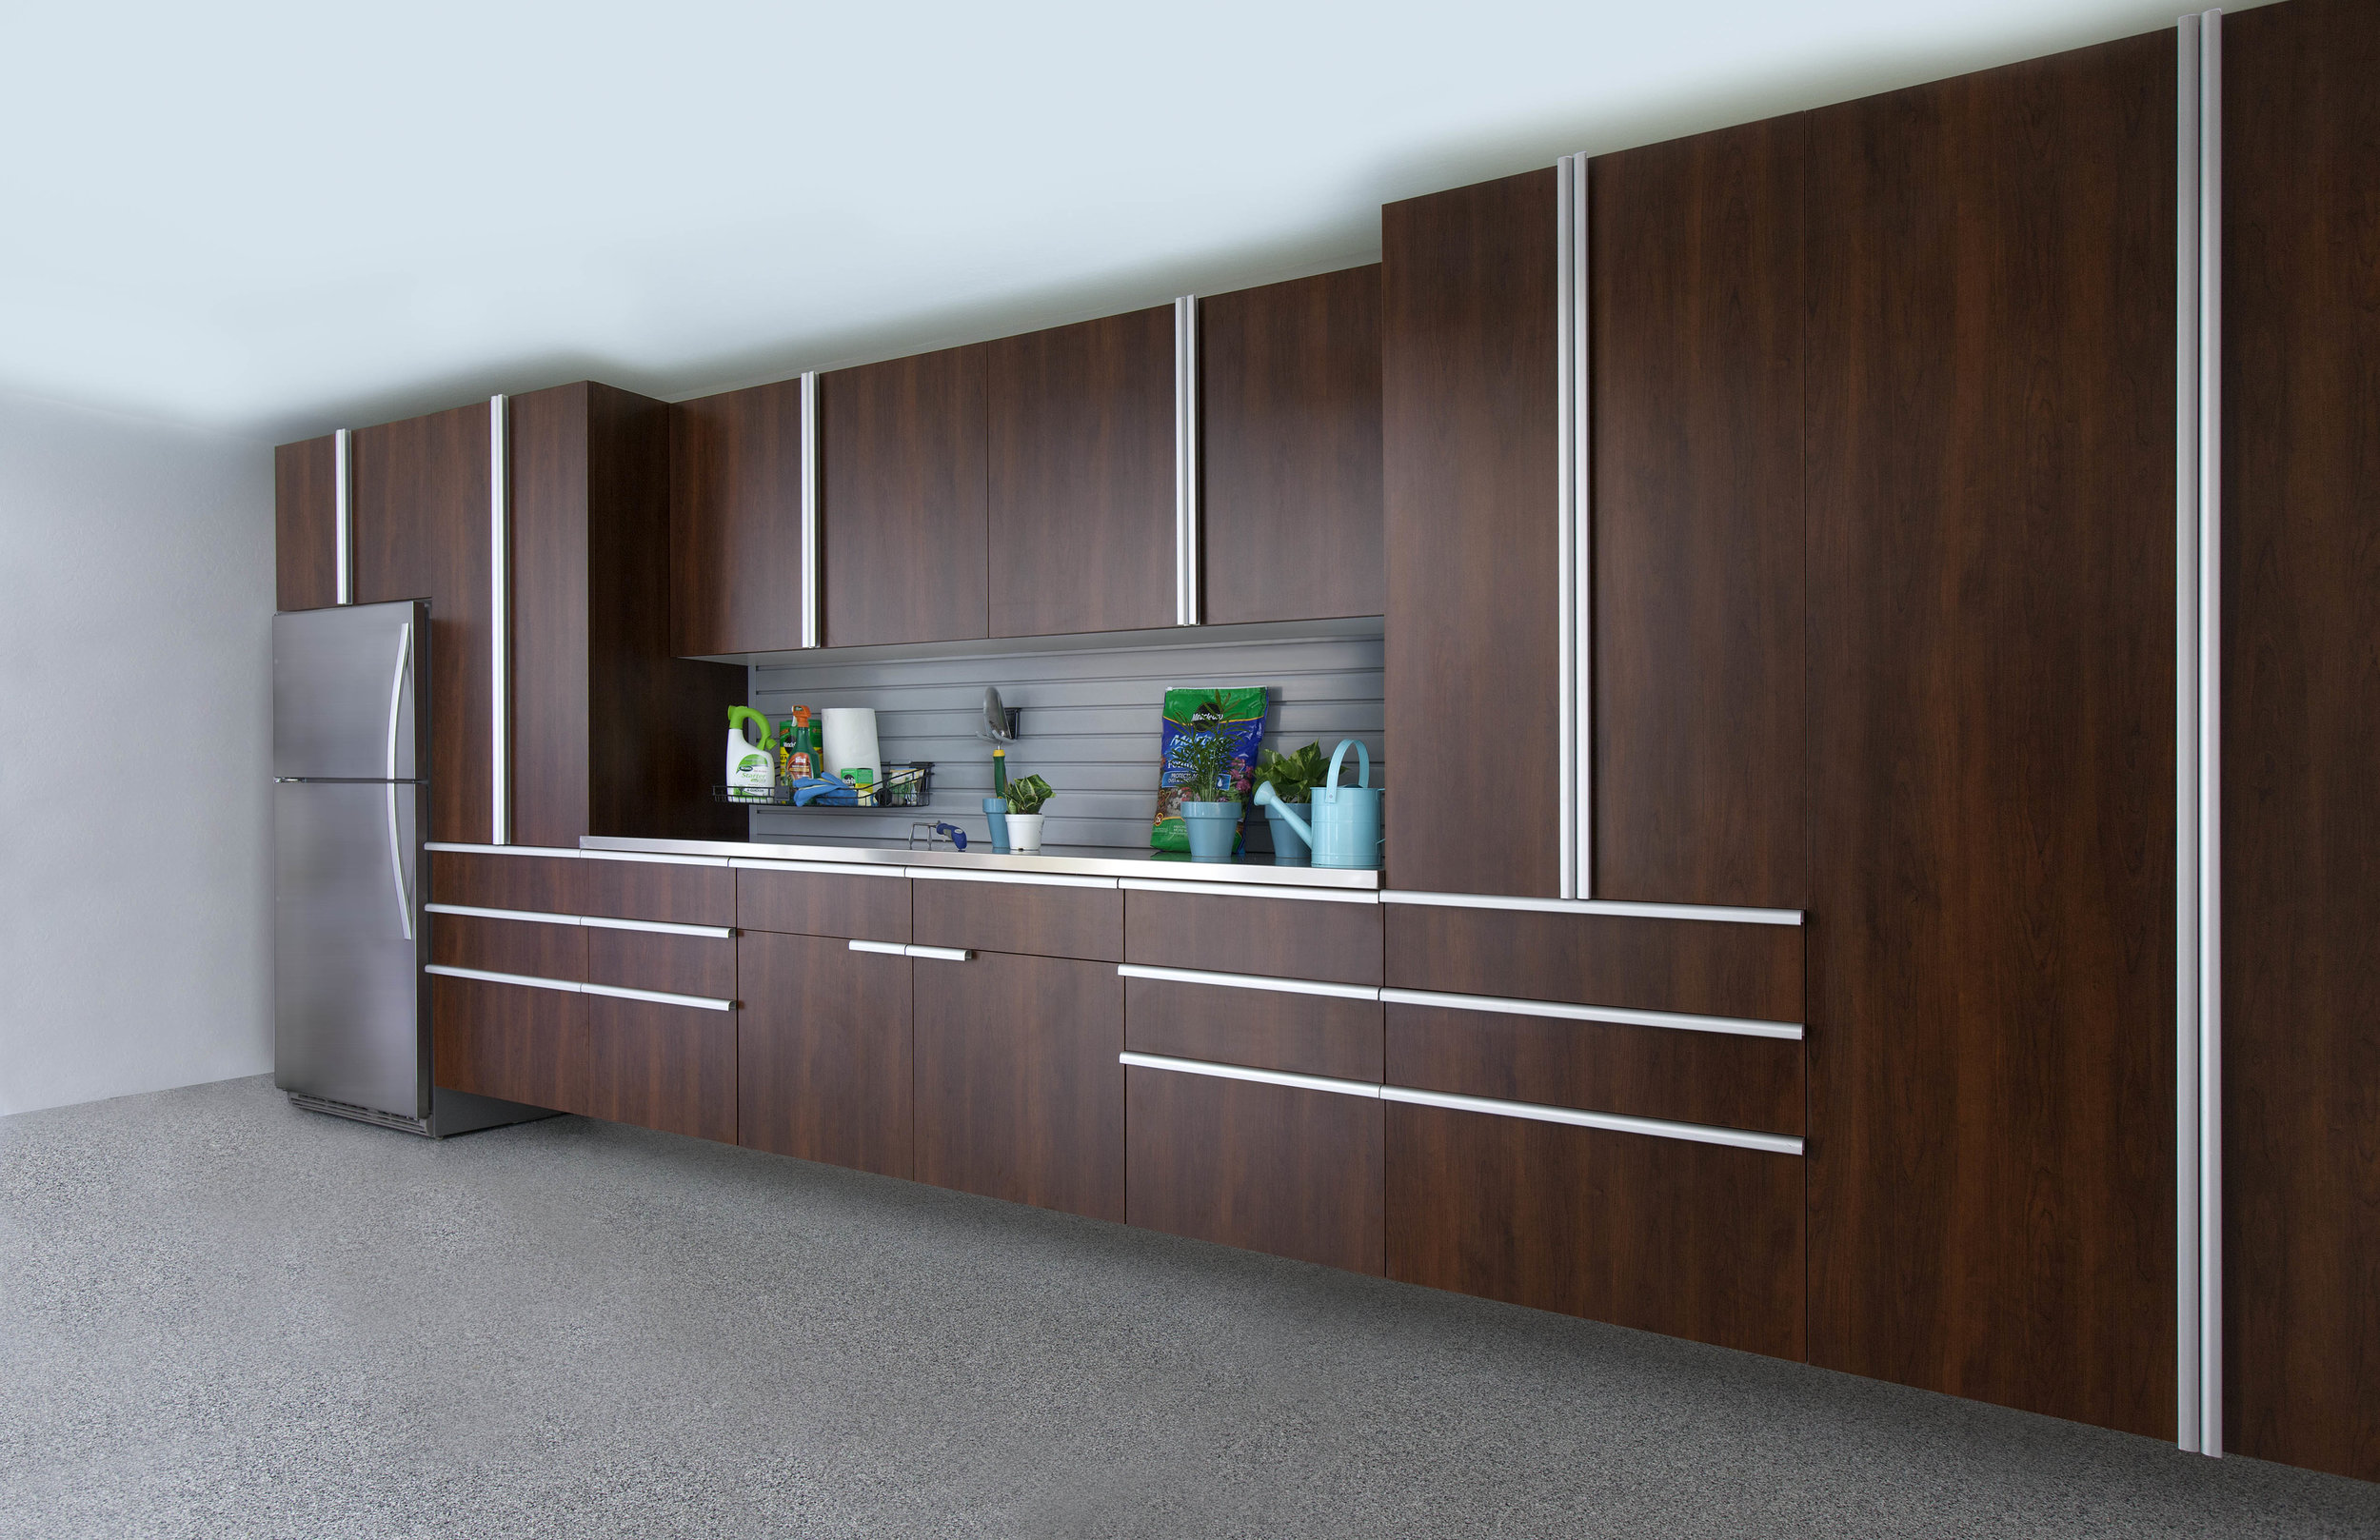 Coco Garage-Extruded Handles-Stainless Workbench-Slatwall-Smoke Floor-ANGLE-Fetch-Sep 2013.jpg